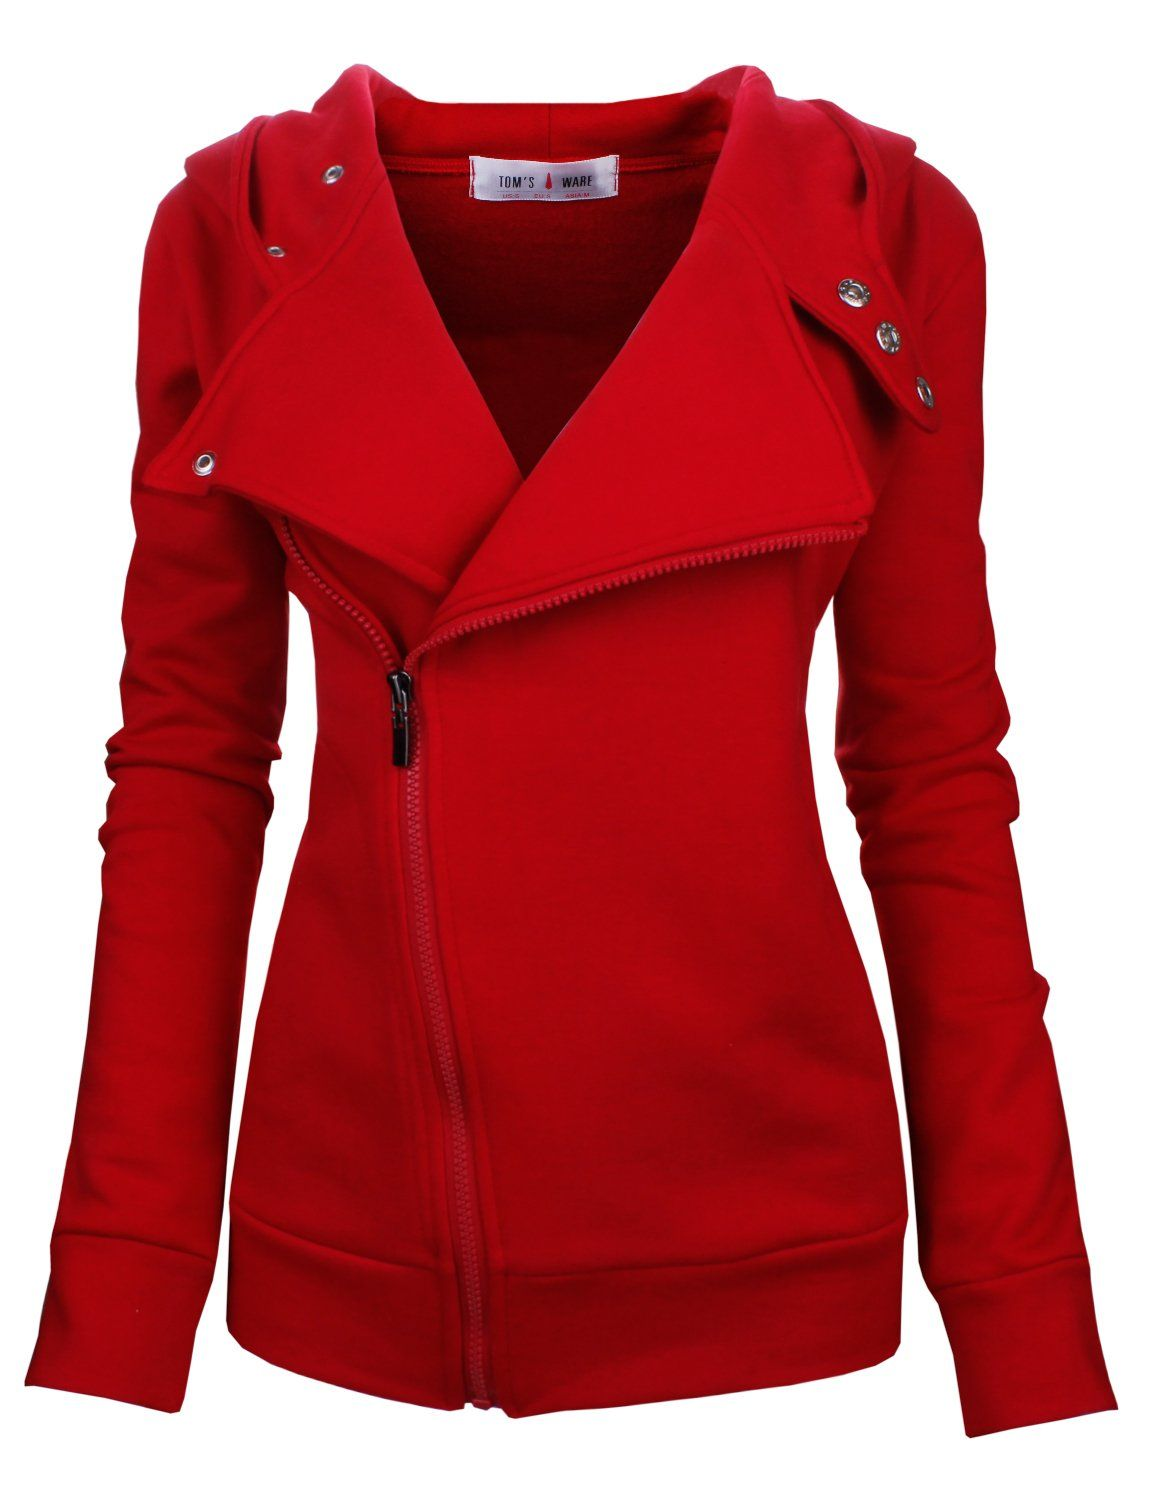 Tom s Ware Women Slim Fit Red Zip-up Hoodie Jacket With Lapel jewel tone   UNIQUE WOMENS FASHION 963a9a43ae